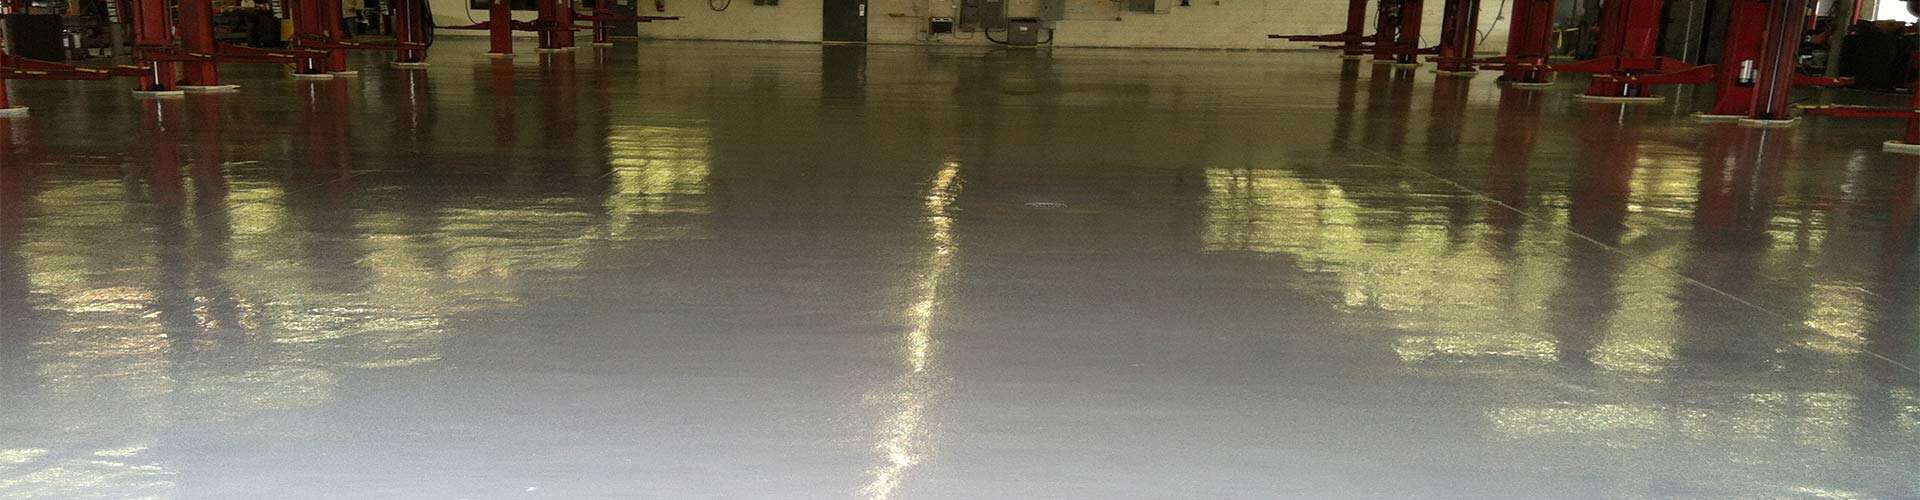 Epoxy Flooring in Assembly Plant